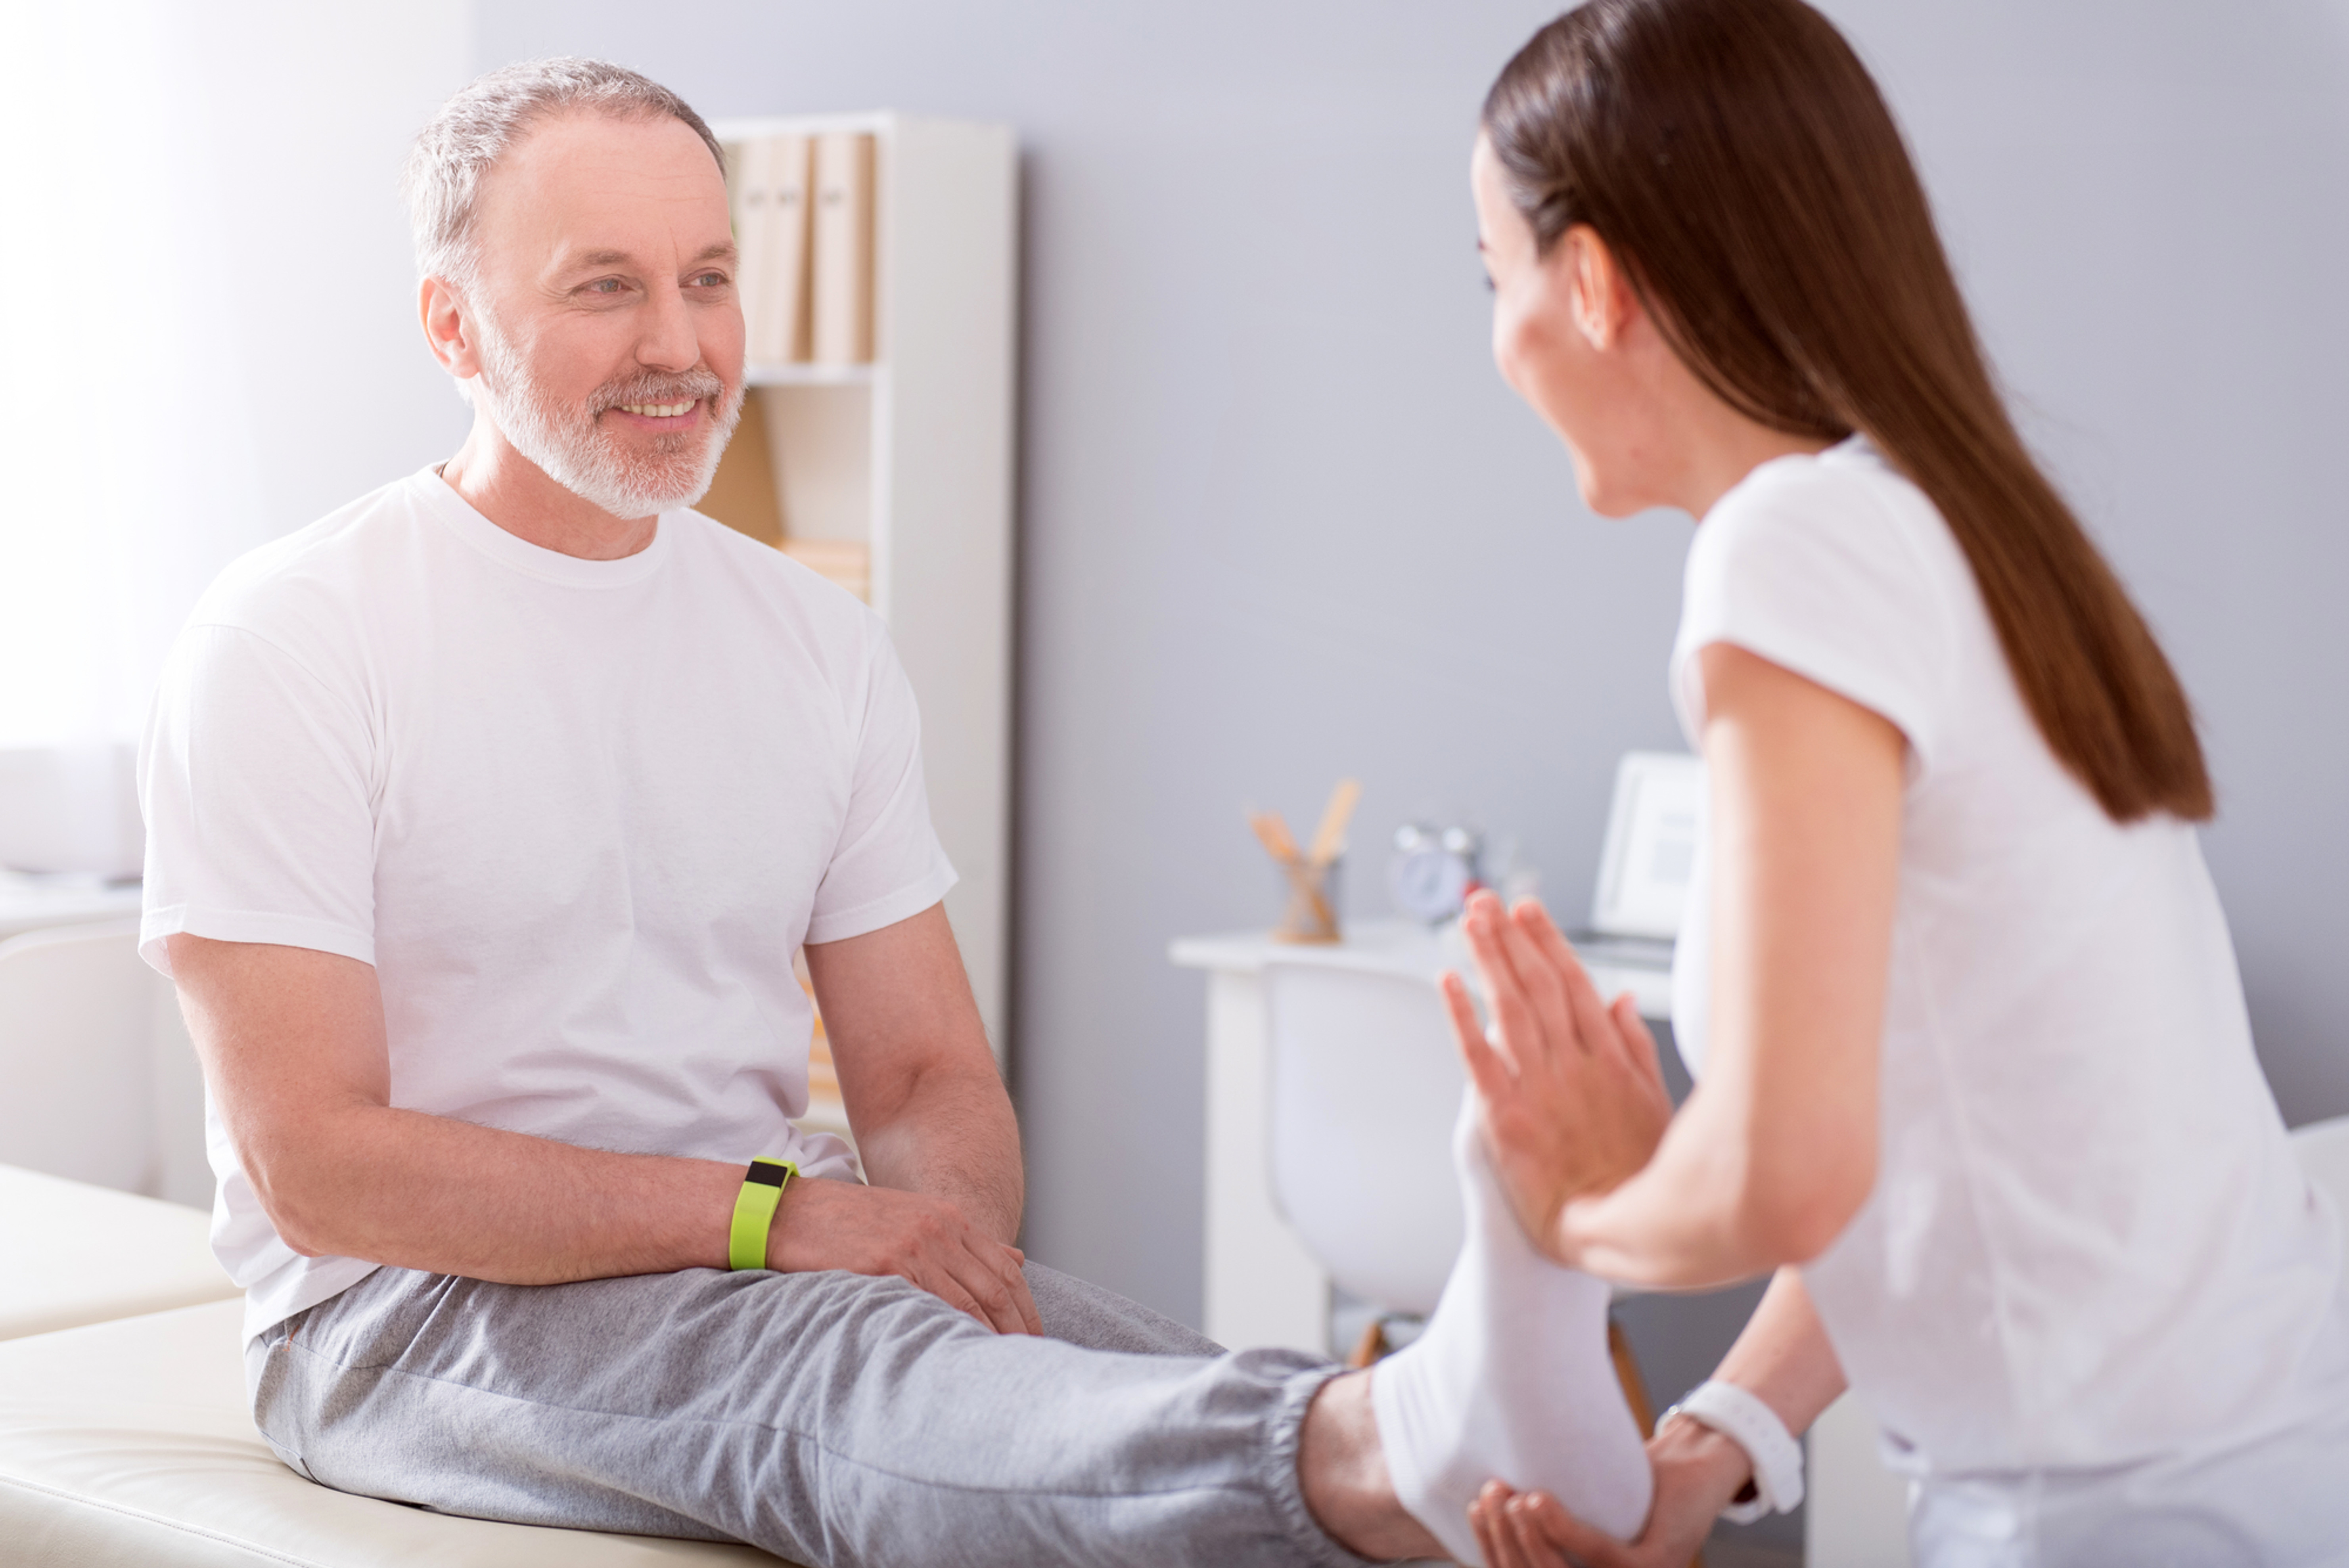 Physical Therapy and Reanimation